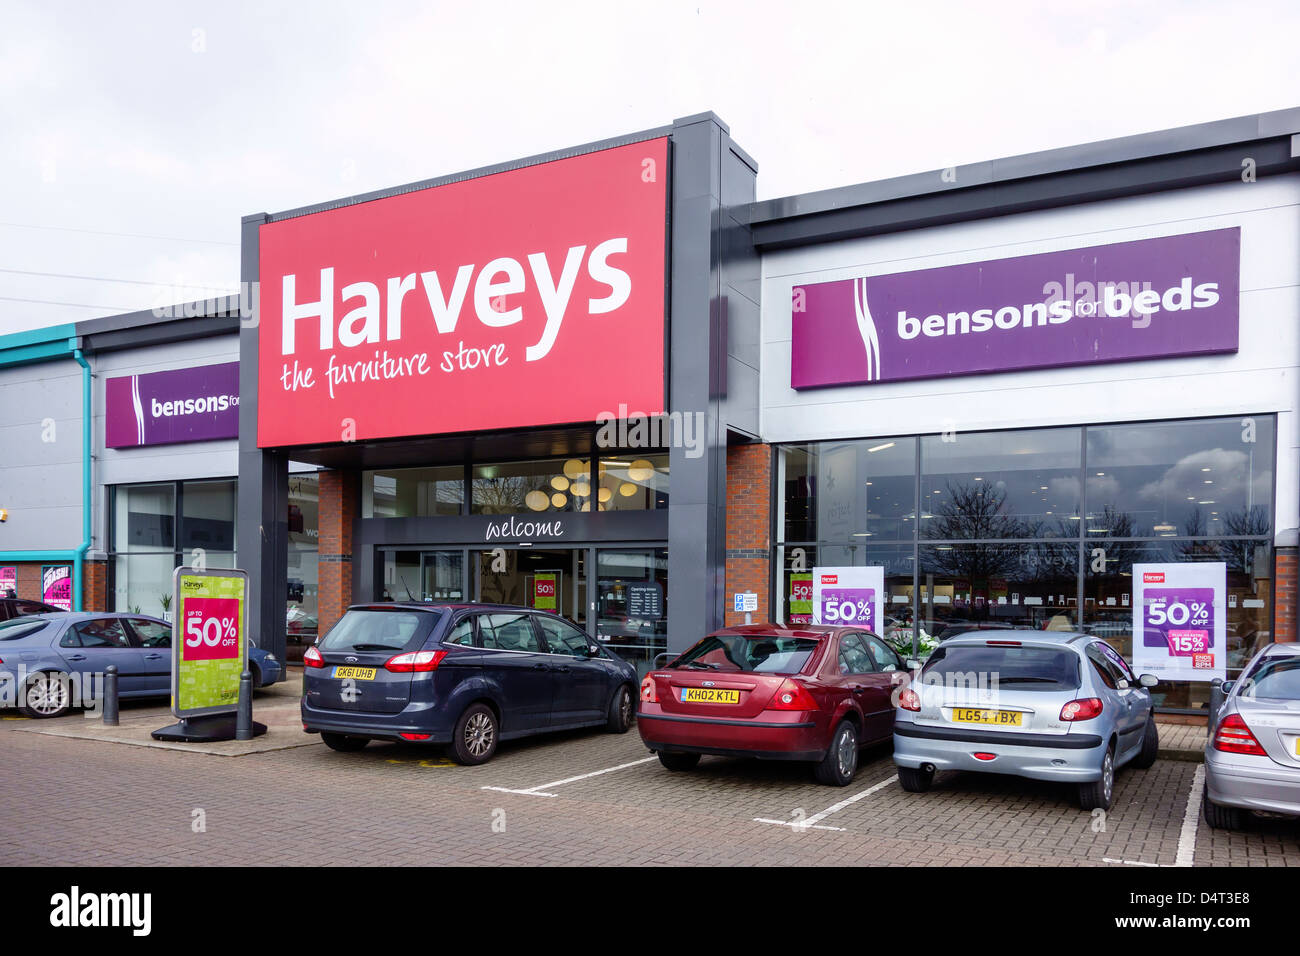 Harveys Furniture Store Canterbury Retail Park Stock Photo Royalty Free Image 54619328 Alamy